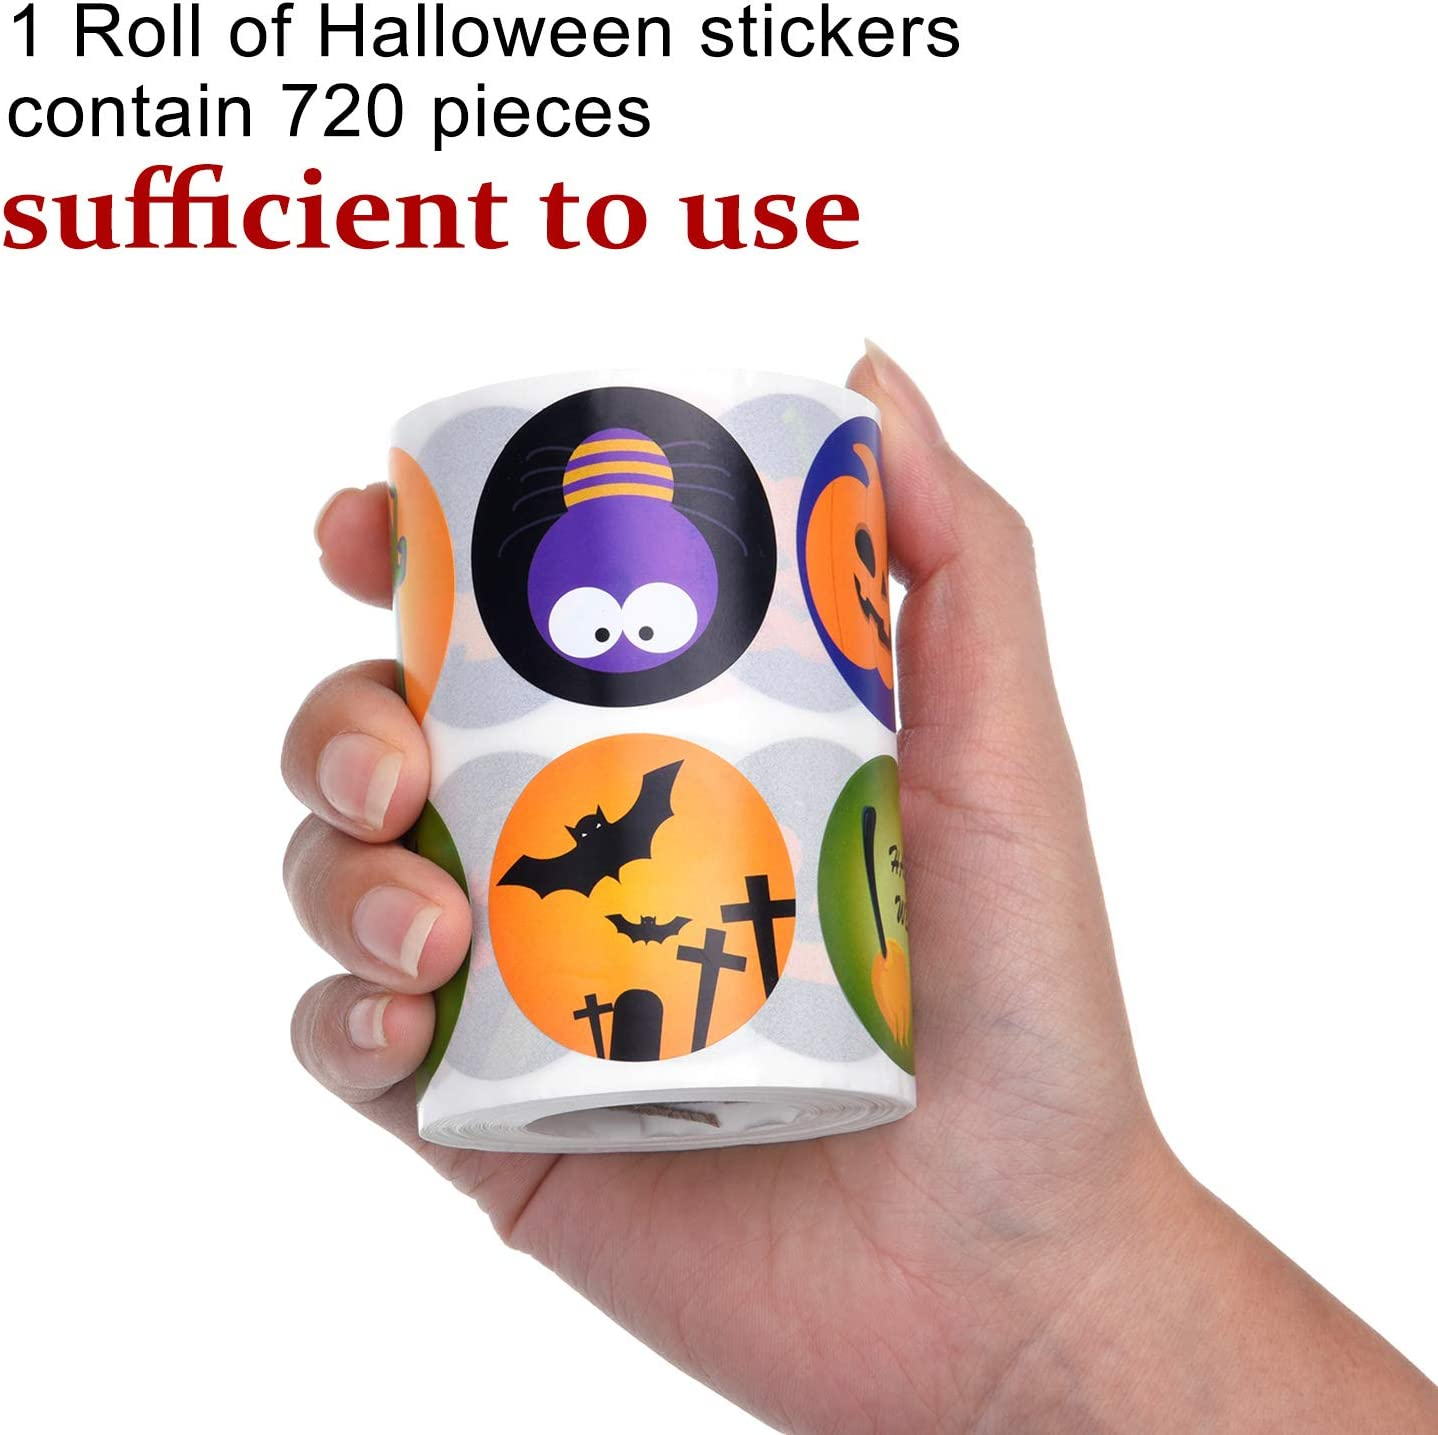 Style Set 1 Outus 720 Pieces Halloween Stickers Set Halloween Pumpkin Bats Spiders Witch Print Stickers Roll Decorations for Halloween Party Favors